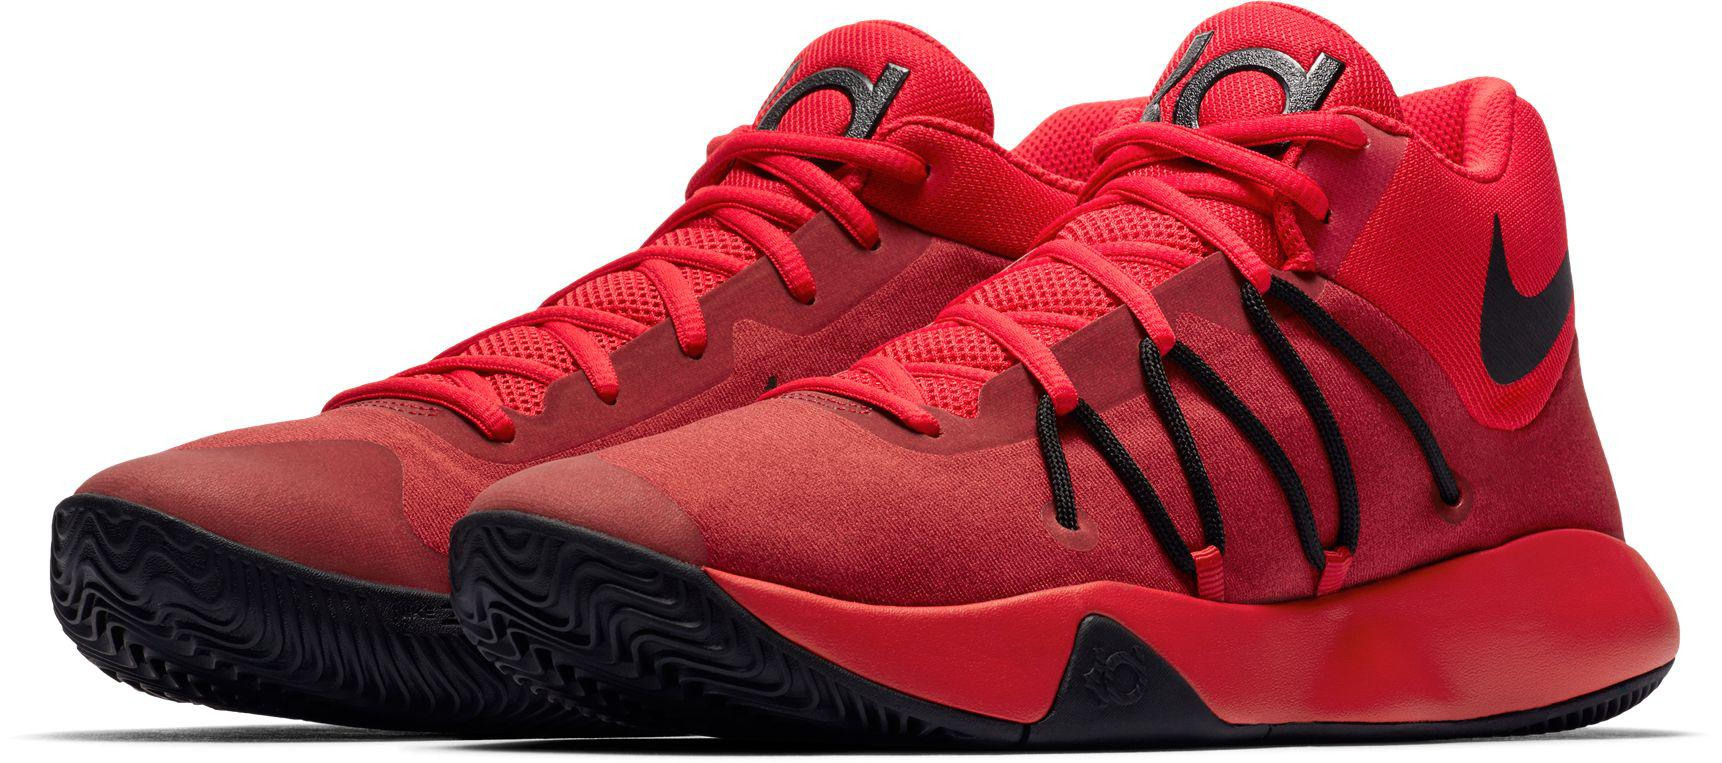 a9082a6ee043 ... Nike - Red Kd Trey 5 V Basketball Shoes for Men - Lyst ...